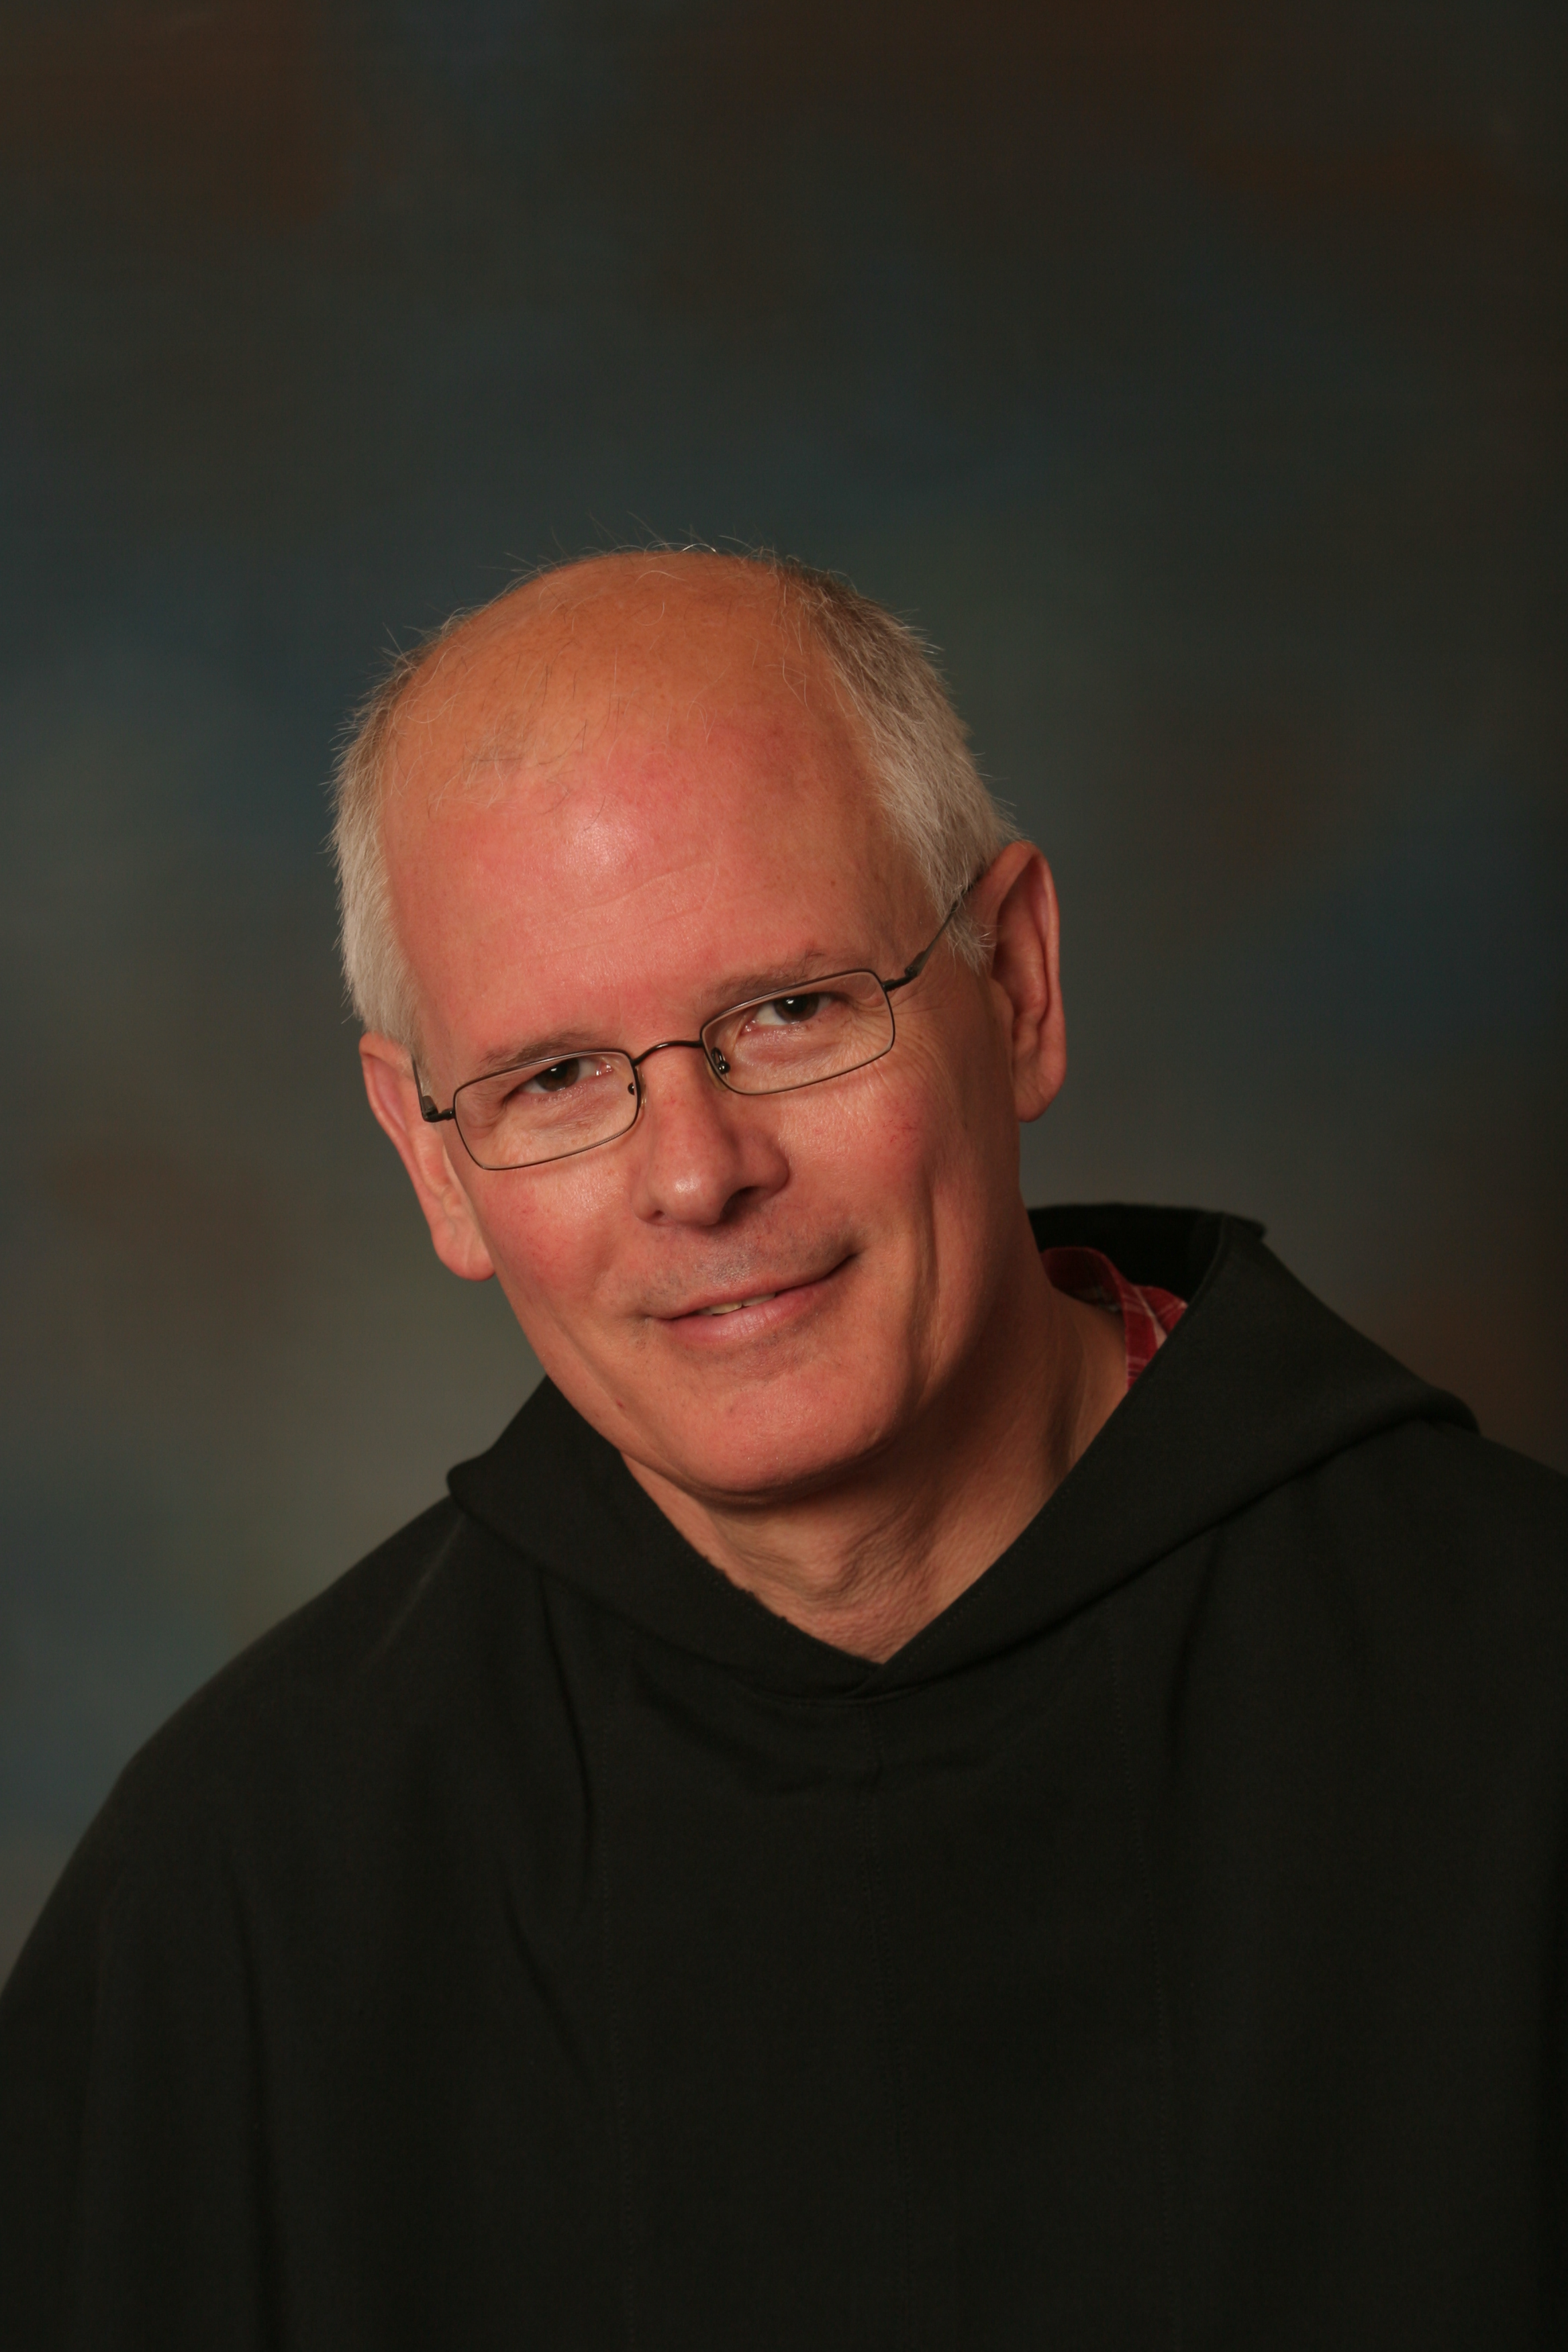 HOMILY DELIVERED BY FR. JIM HALSTEAD, O.S.A.